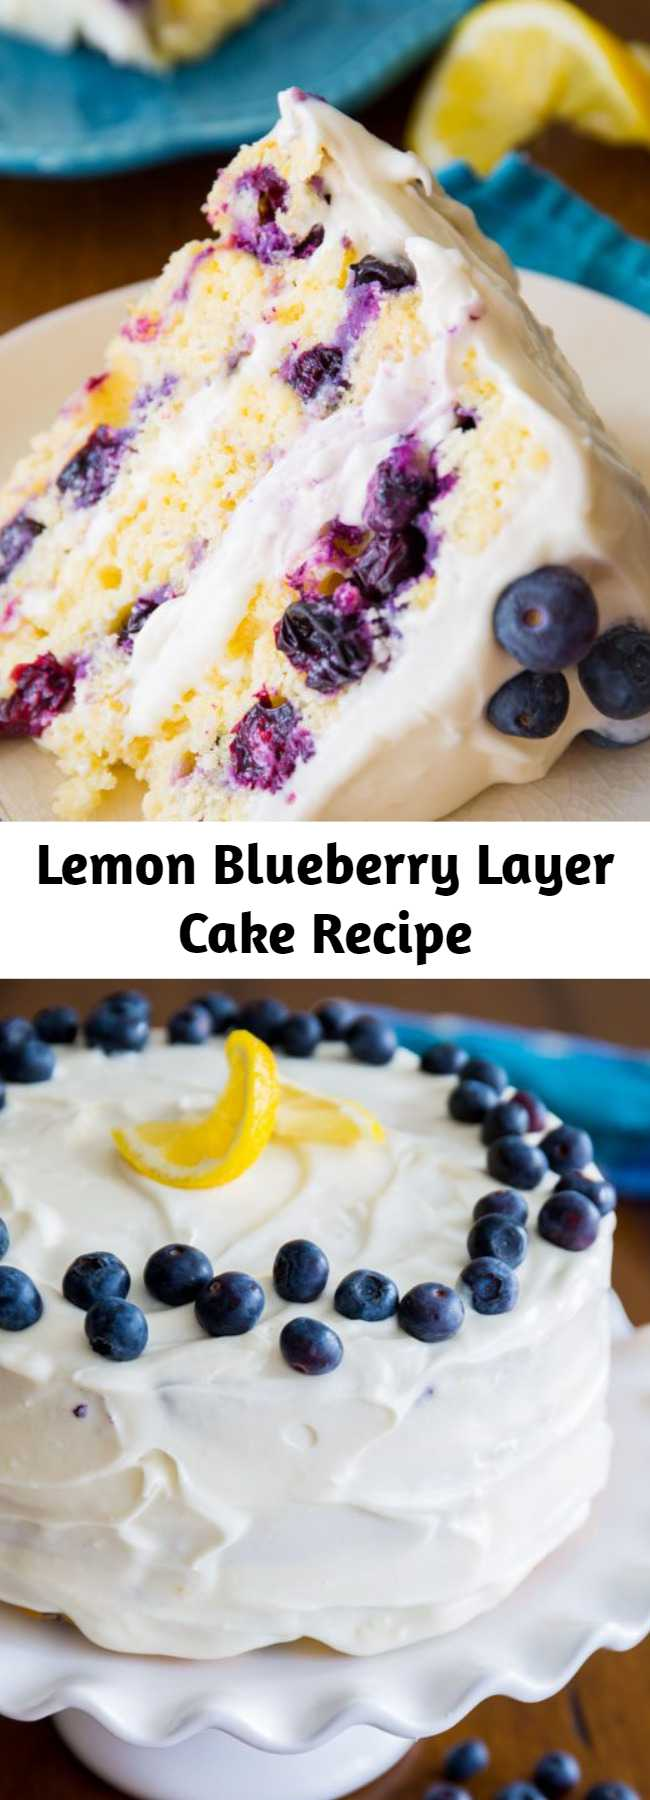 Lemon Blueberry Layer Cake Recipe - Sunshine-sweet lemon layer cake dotted with juicy blueberries and topped with lush cream cheese frosting. You can use either fresh or frozen blueberries in this cake. If using frozen, no need to thaw.